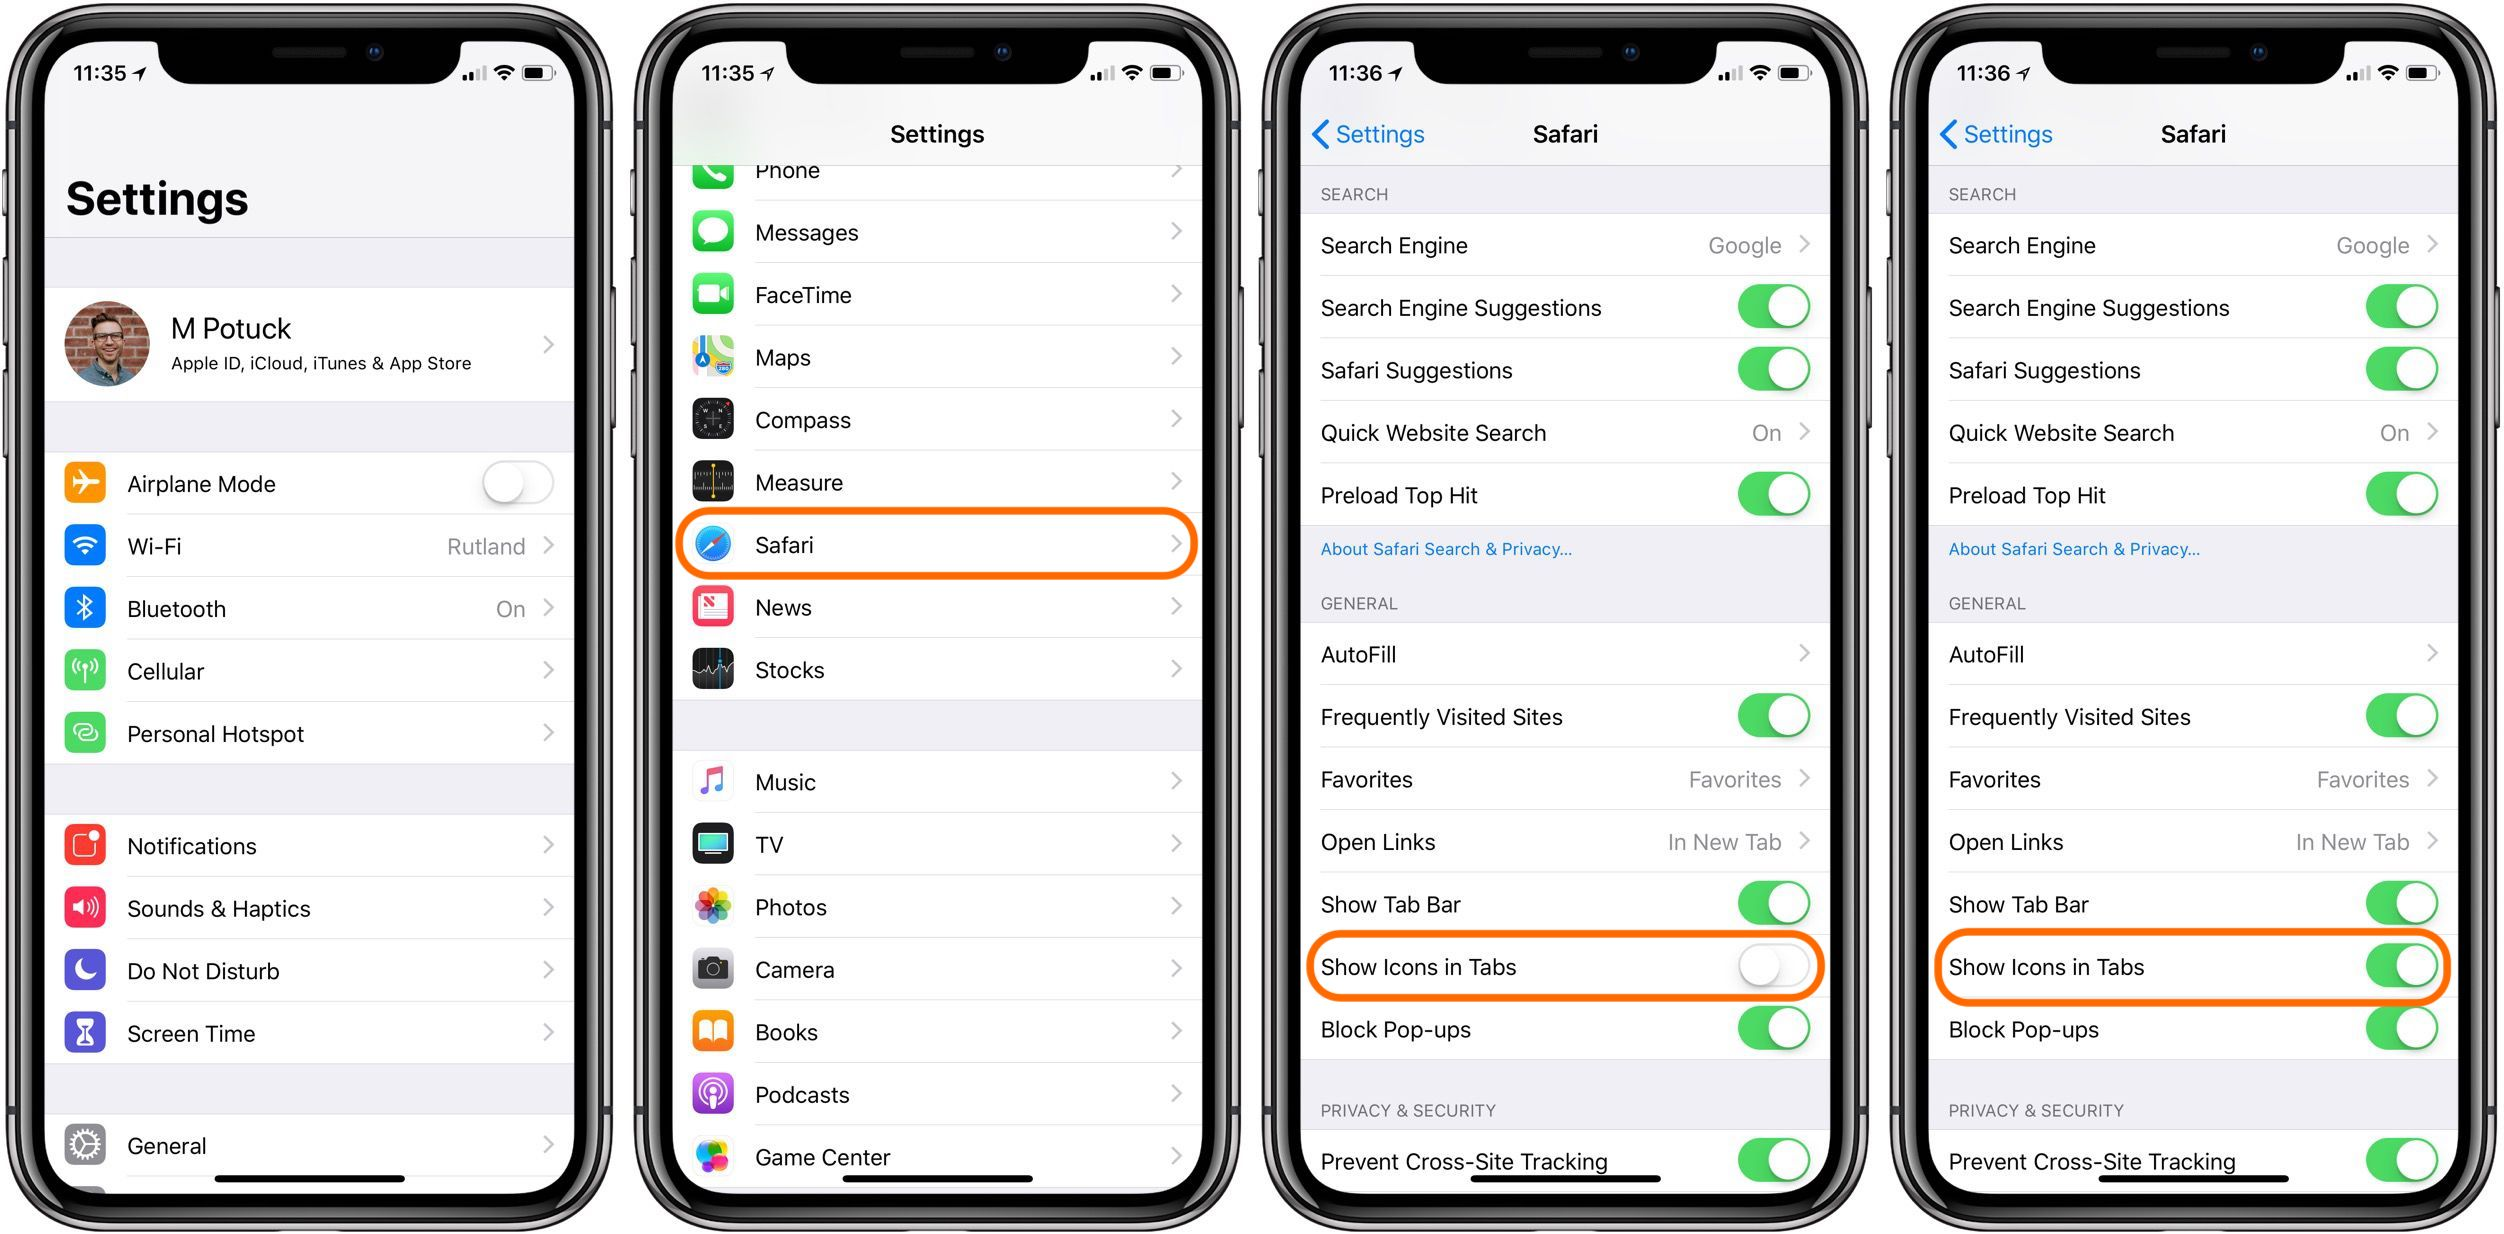 iPhone & iPad: How to show Safari tab icons in iOS 12 - 9to5Mac